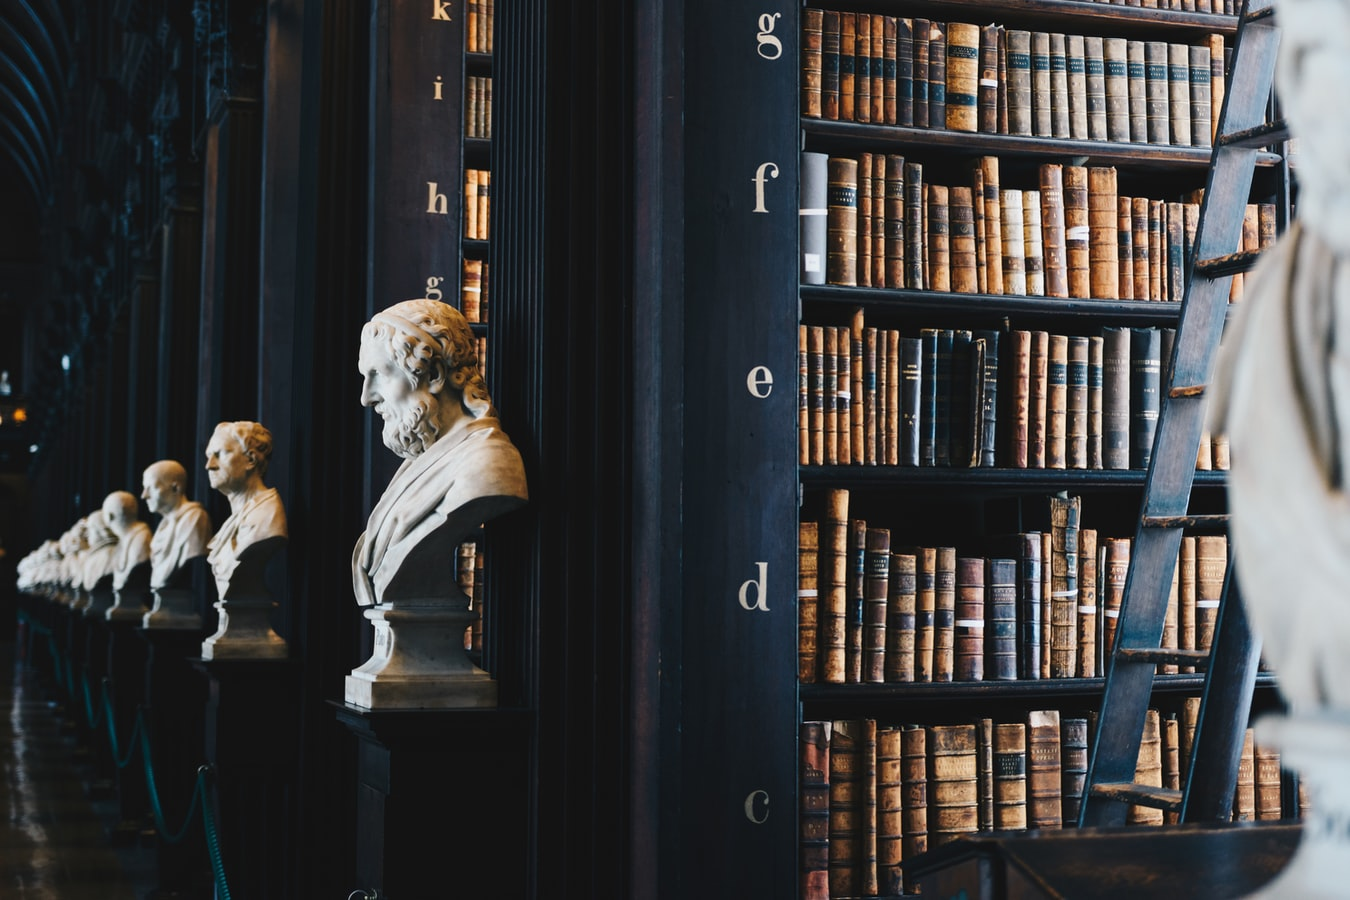 100 Best Philosophy Books of All Time